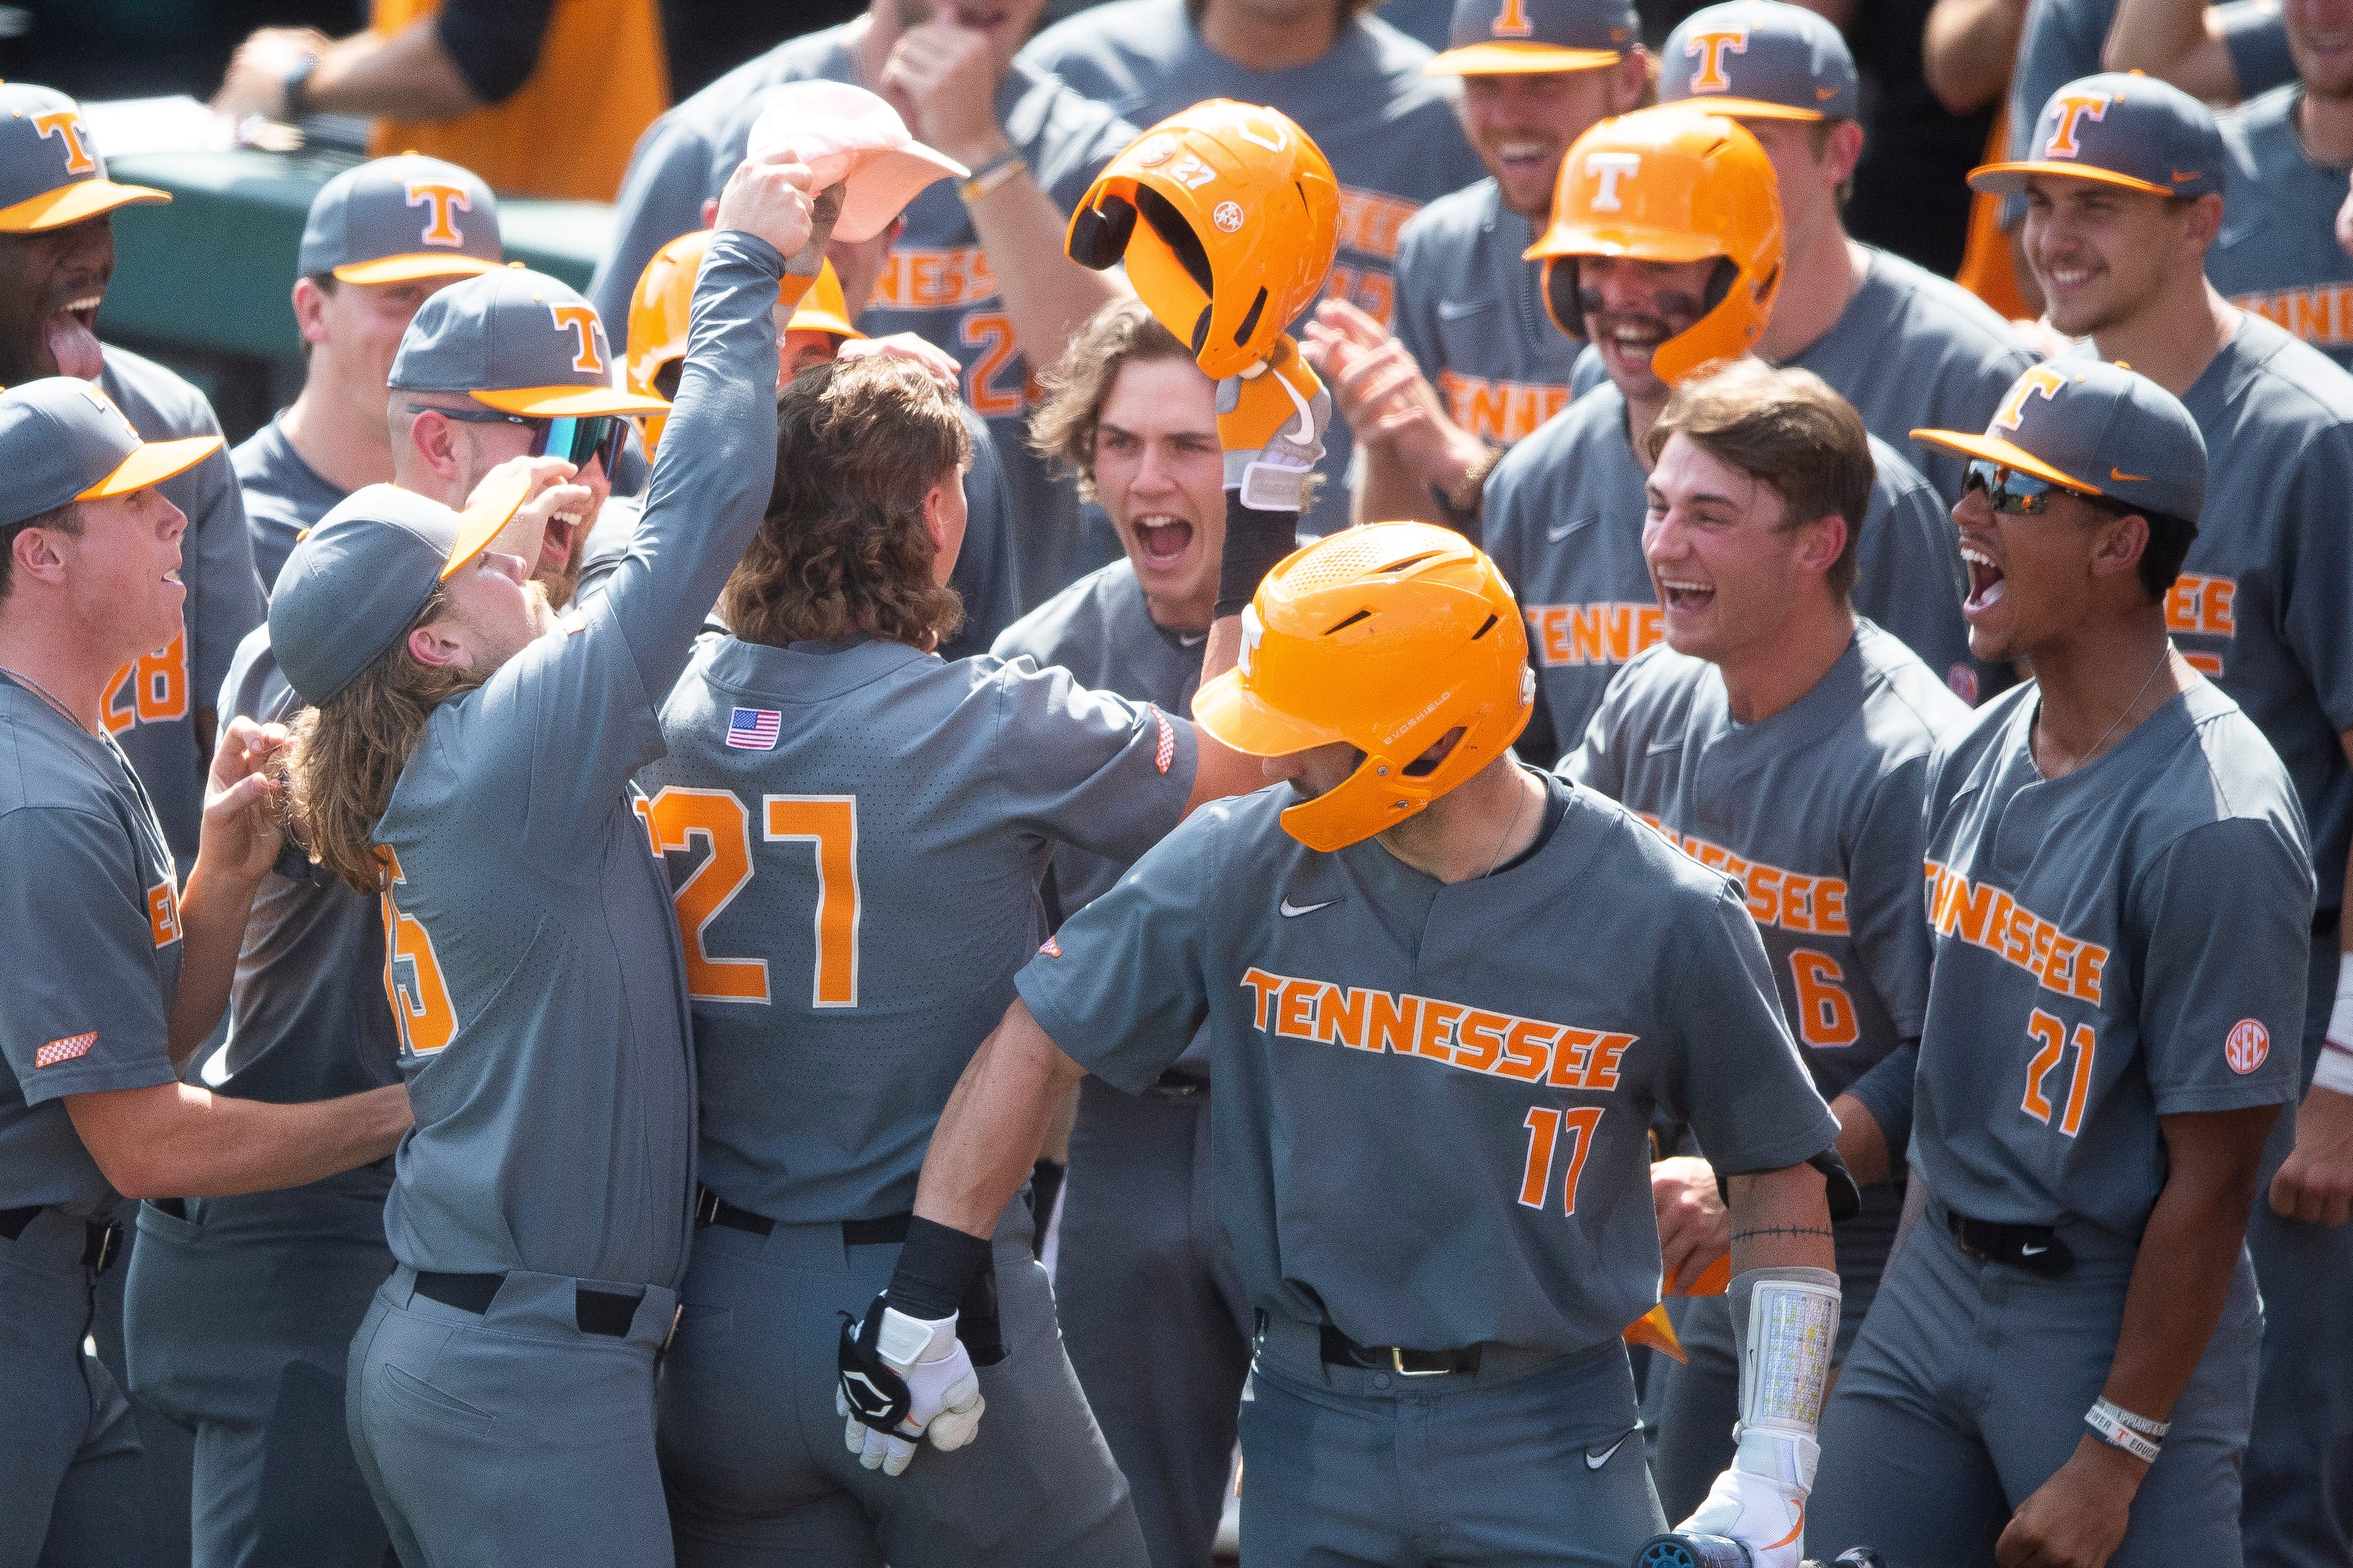 The Tennessee bench gives Tennessee's Jordan Beck the Daddy hat during game two of the Knoxville Super Regional between the Tennessee Volunteers and the LSU Tigers held at Lindsey Nelson Stadium on Sunday, June 13, 2021.